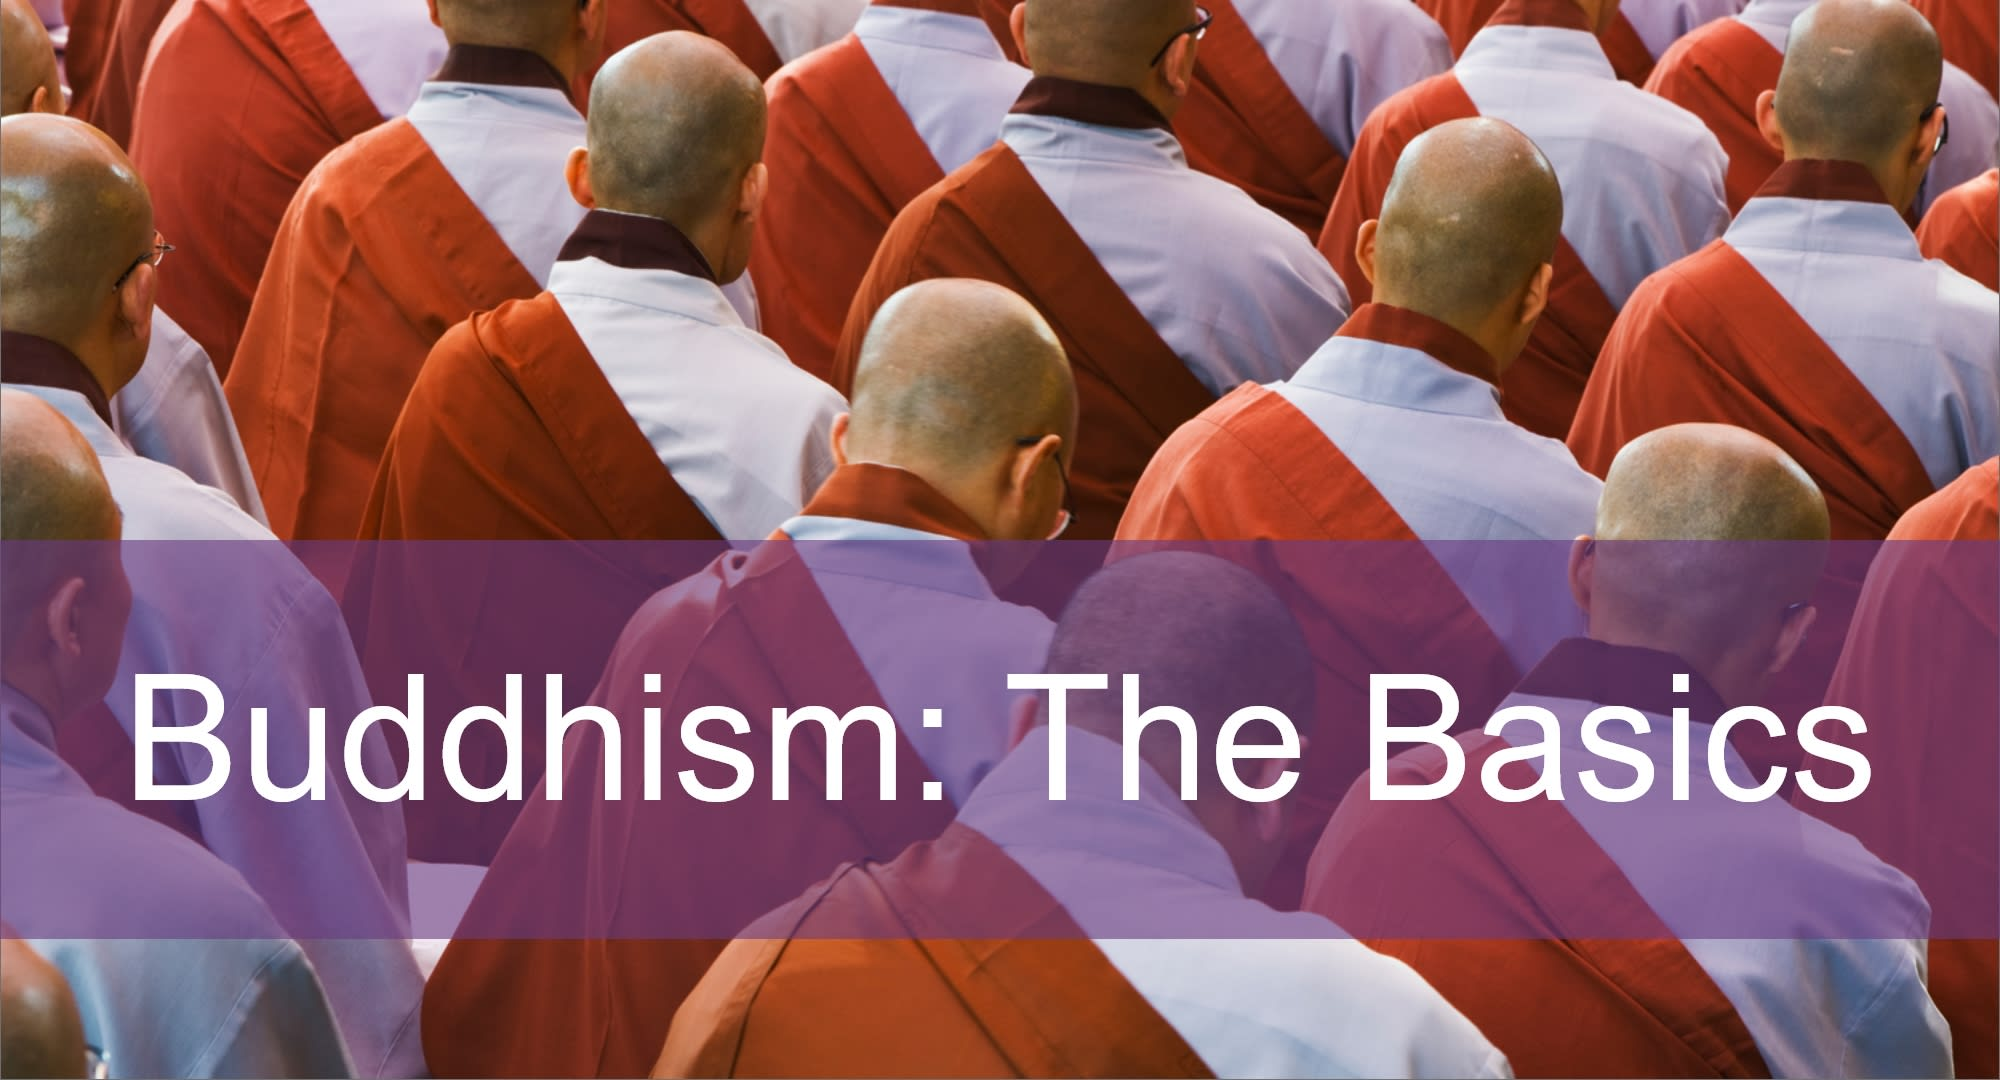 Click here to view articles on Buddhism: the Basics